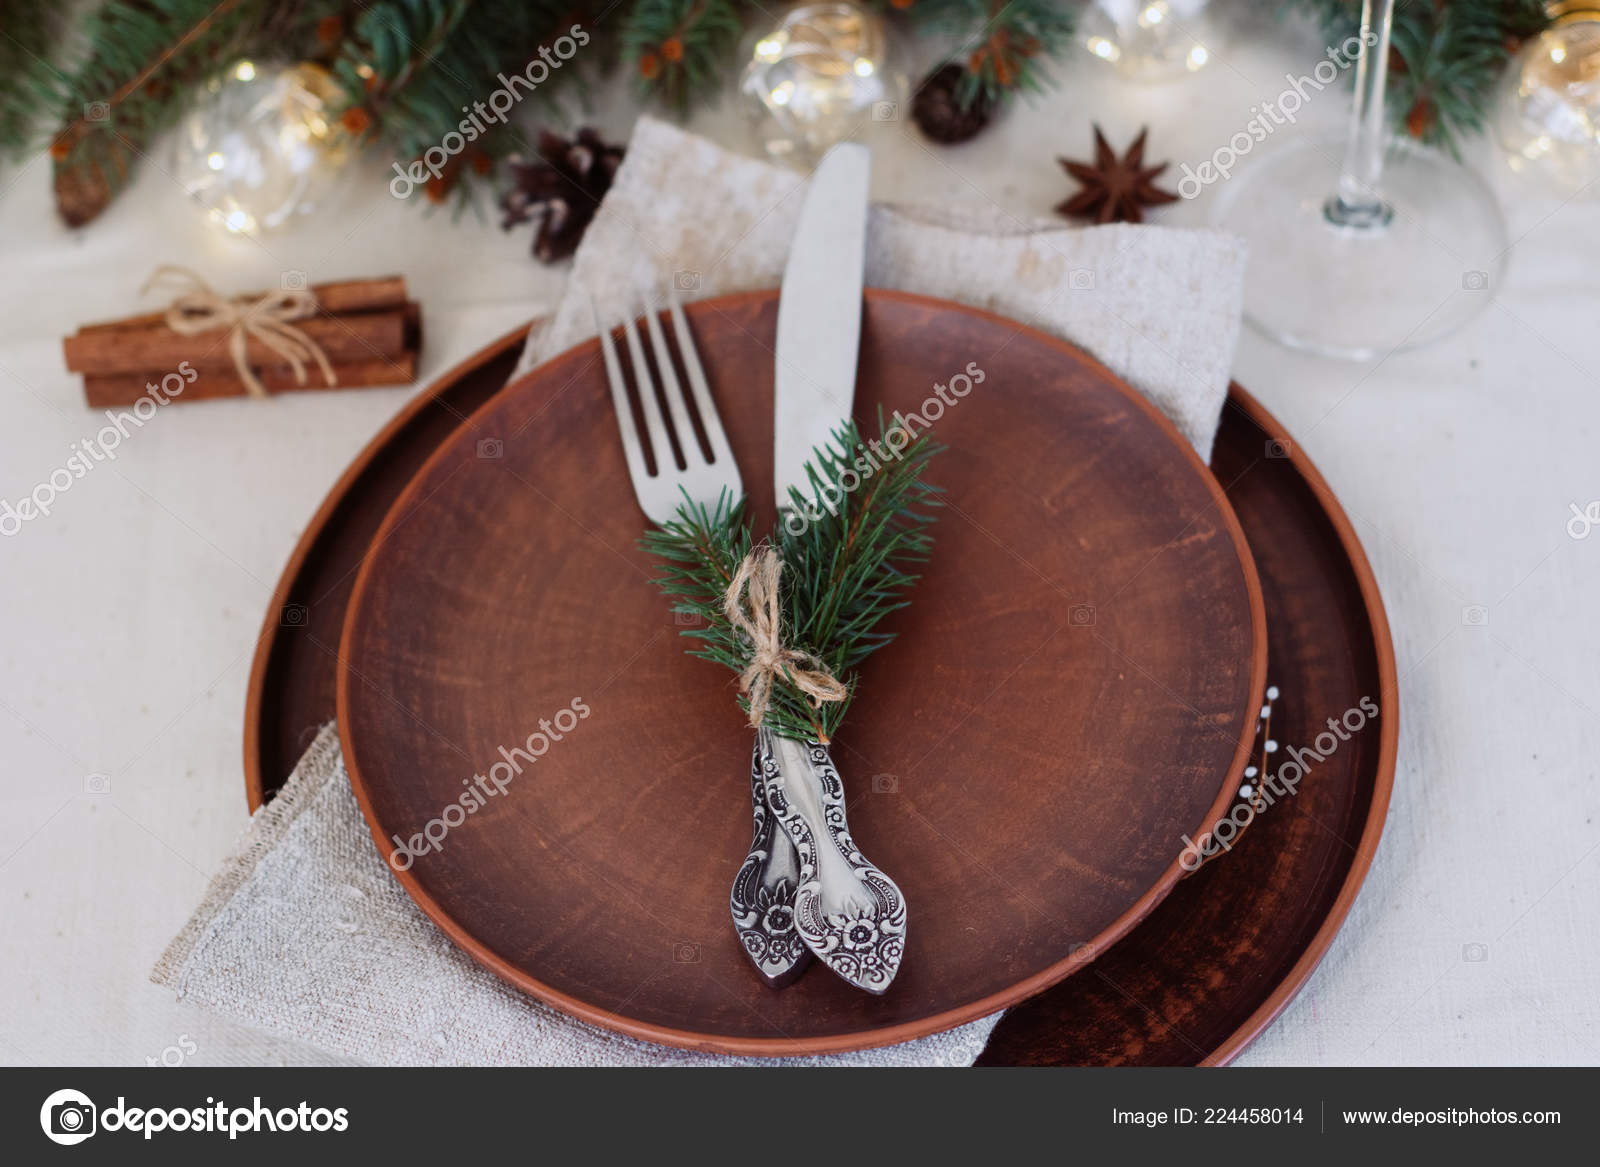 Table Christmas Decorations Garland Ware Green Spruce Branches